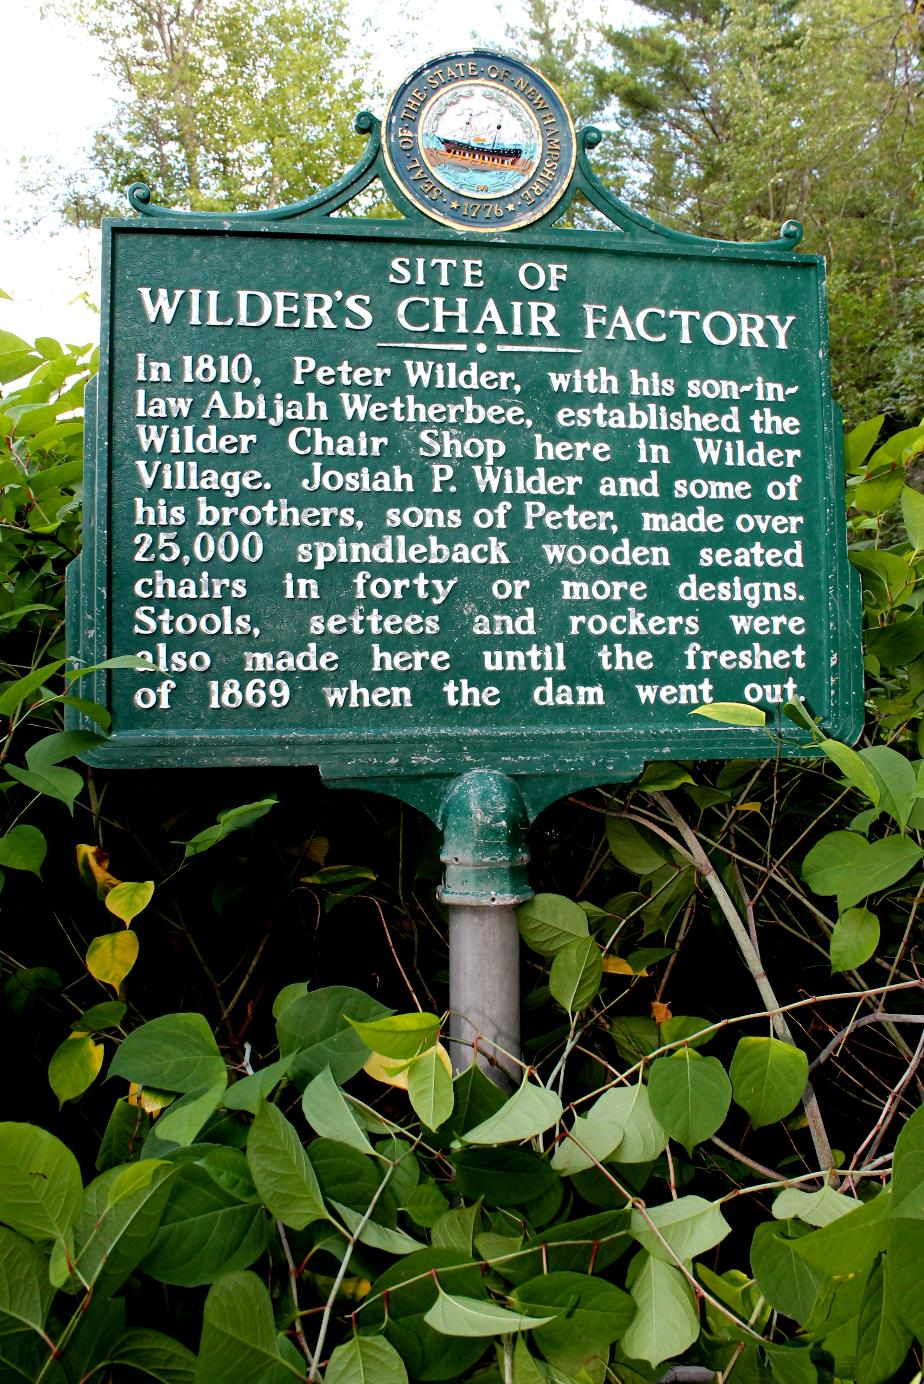 Wilders Chair Factory Historical Marker - New Ipswich New Hampshire